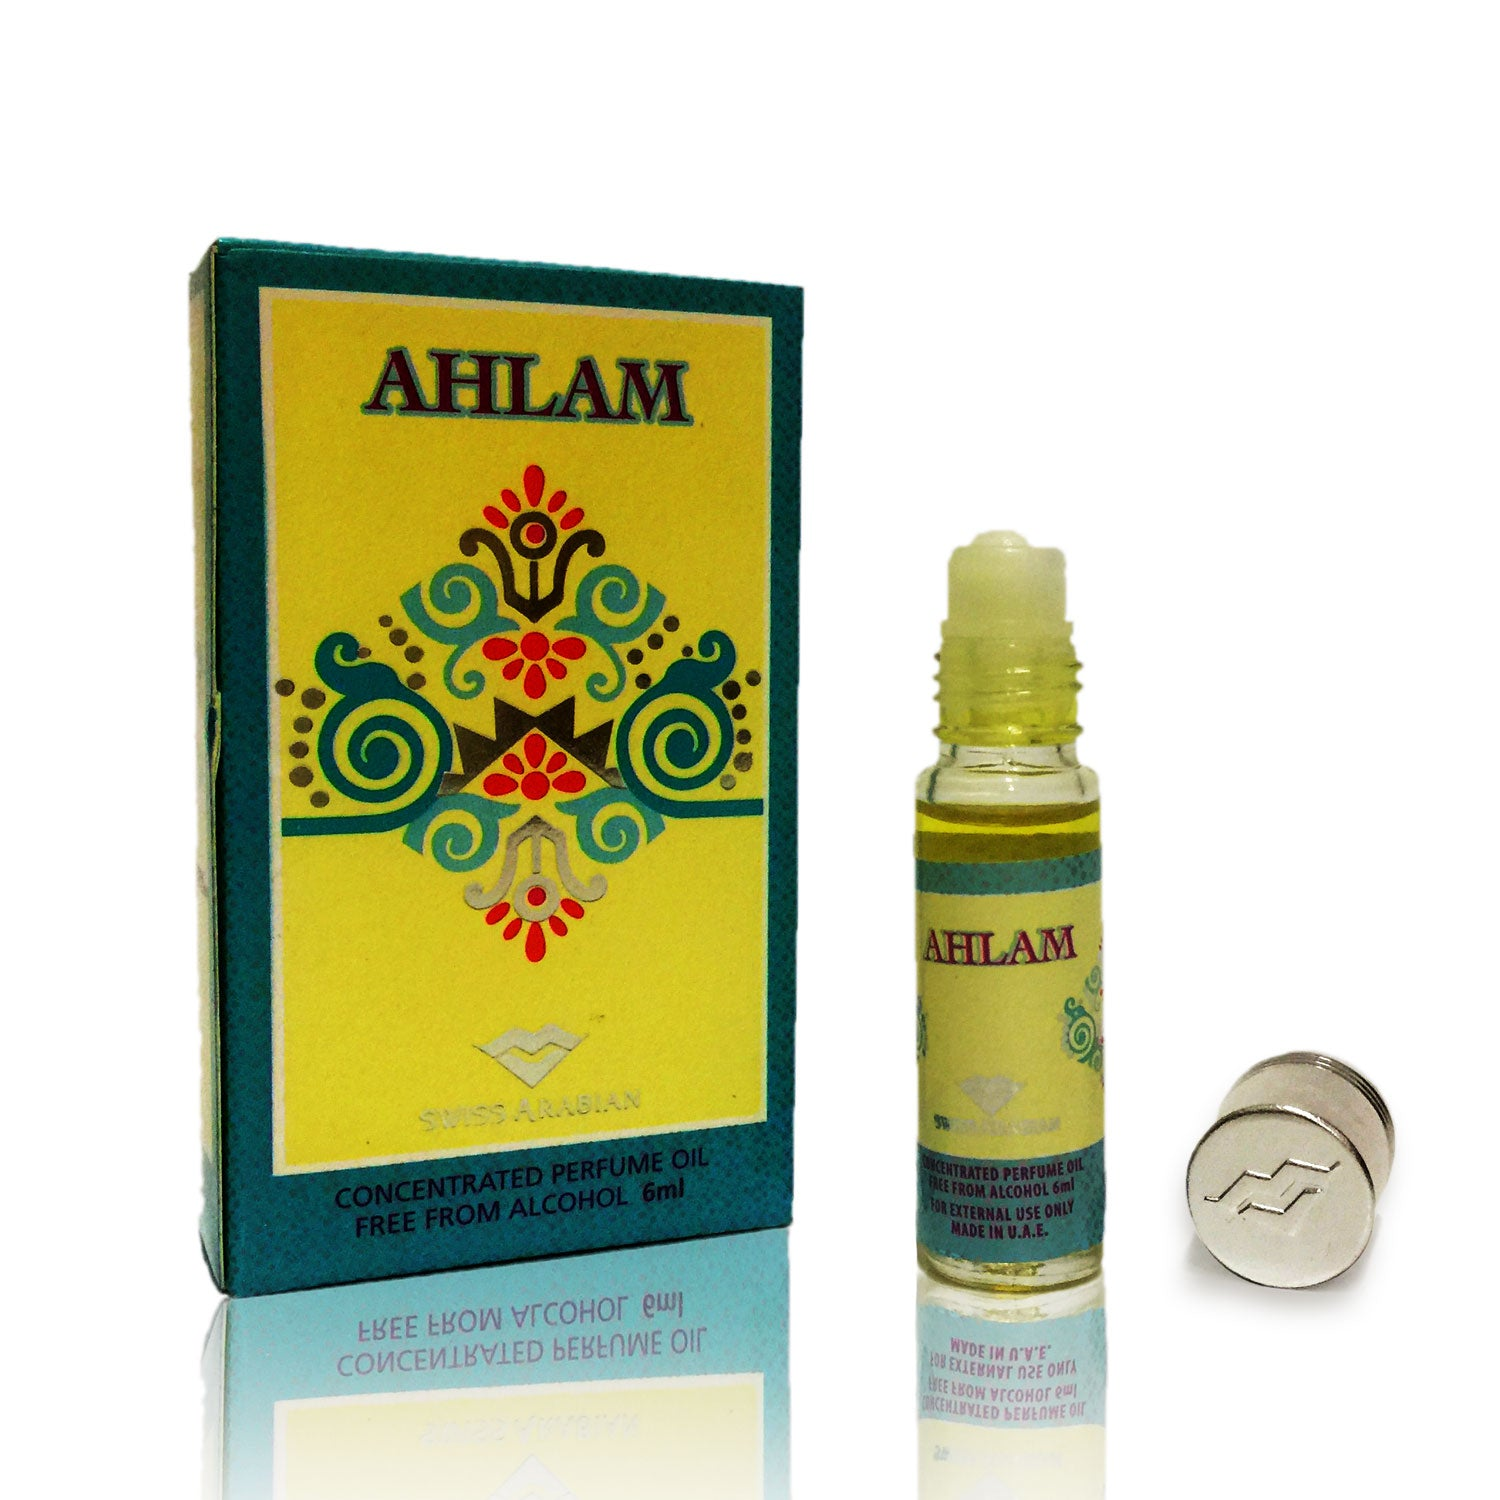 AHLAM, Roll On Perfume Oil 6 mL (.2 oz) | Musk, Floral, Fruity, Woody, Citrus, Spicy